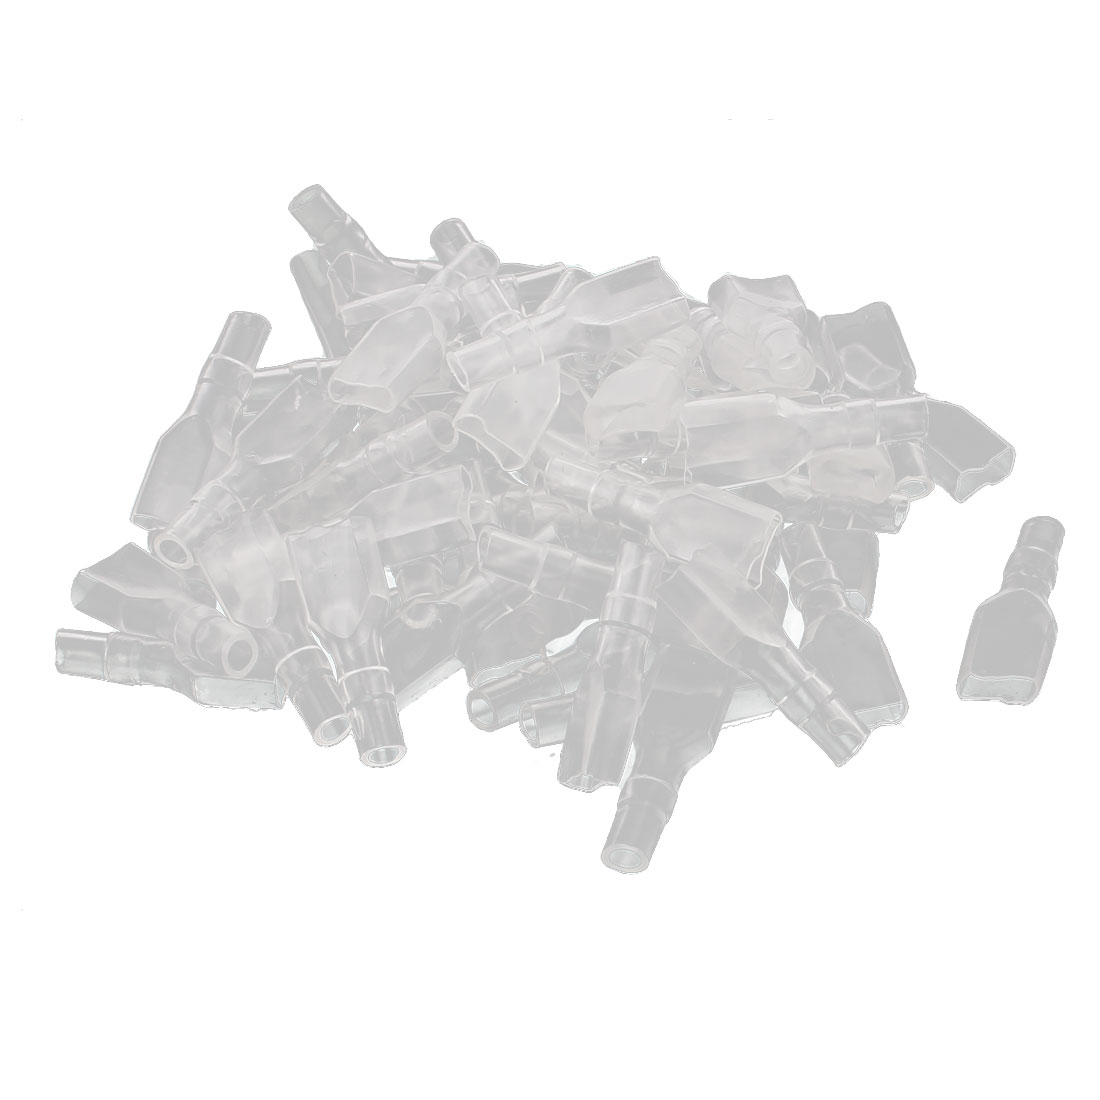 6.3mm Female Spade Wire Terminal Connector Insulated Cap Sleeve Cover Clear 70Pcs